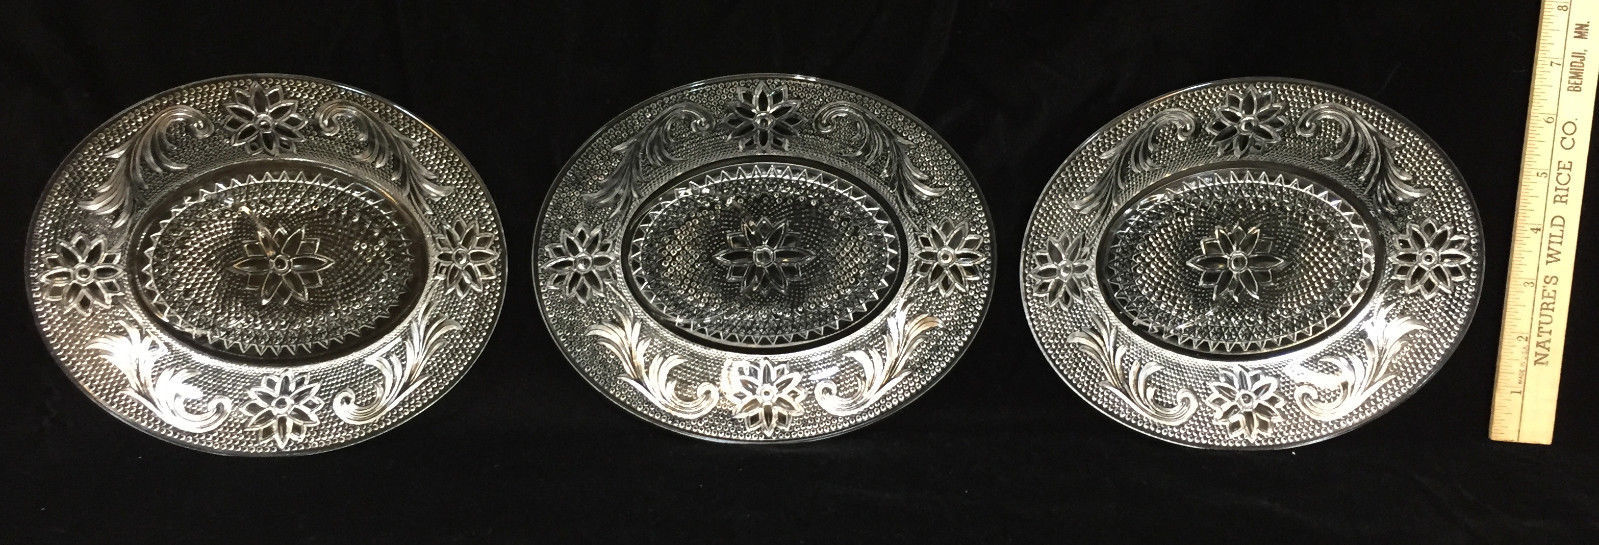 Indiana Glass Snack Tray Plates & Cups Tiara and 50 similar items